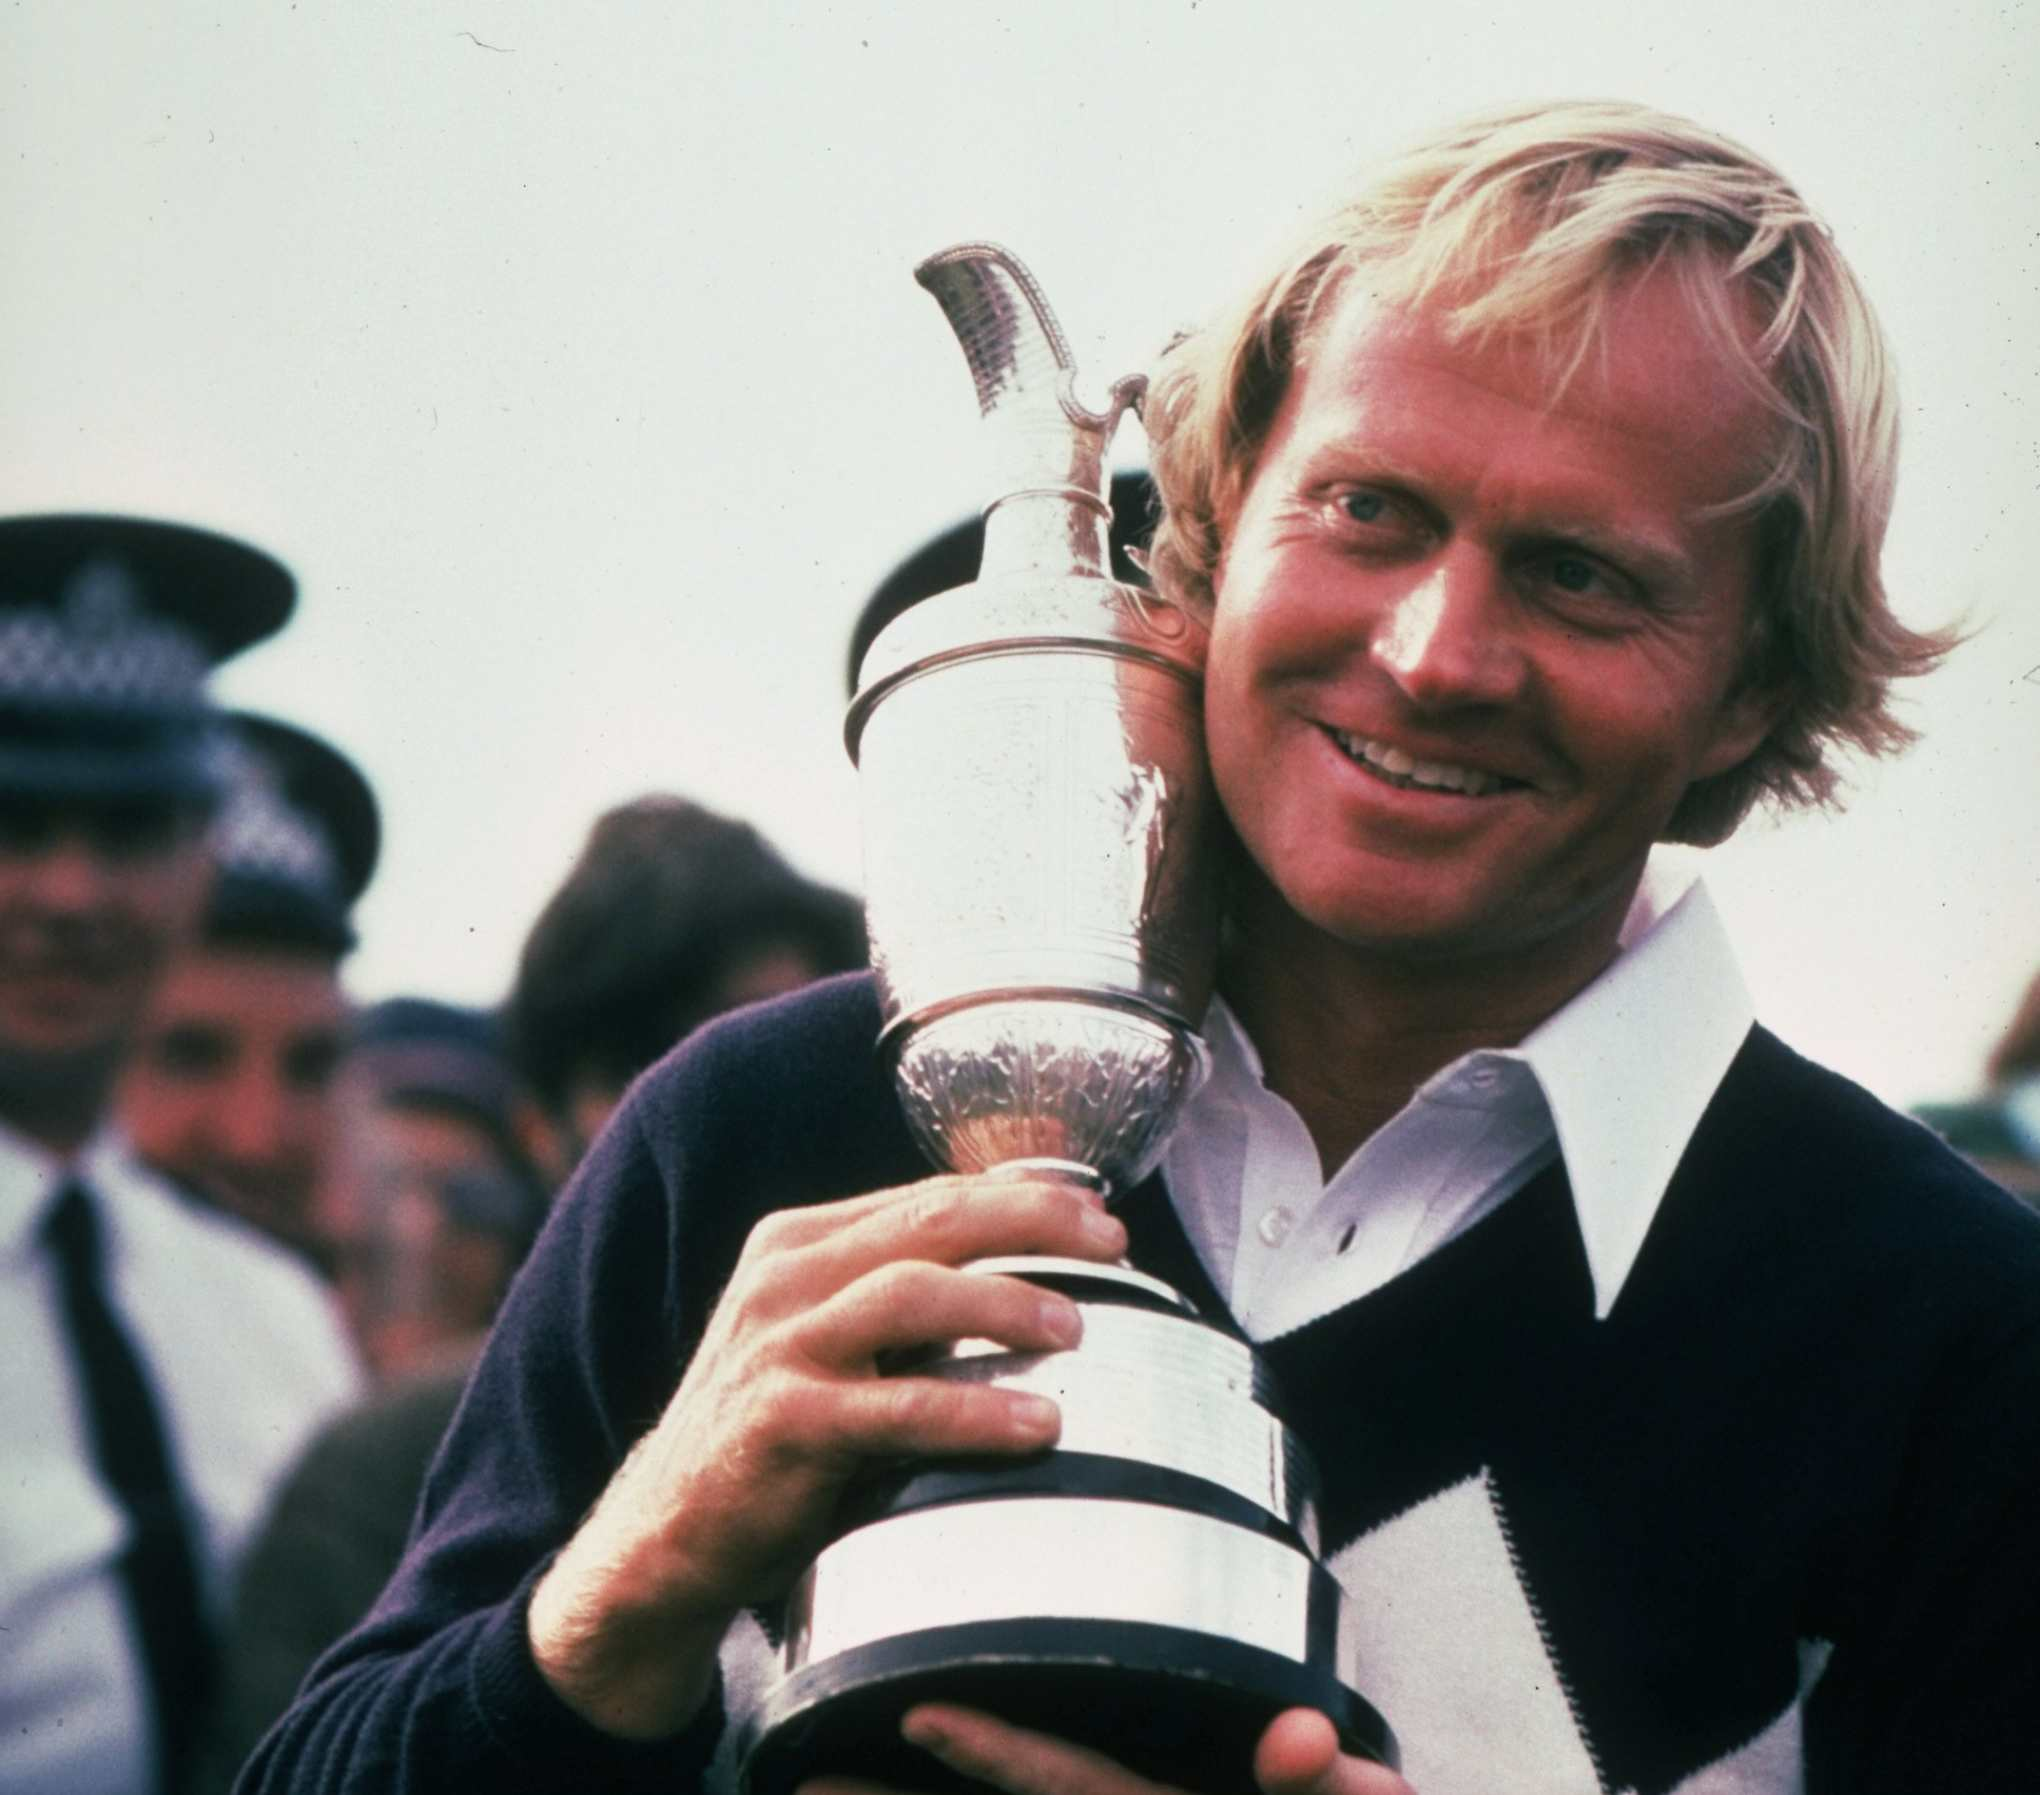 Jack Nicklaus holds the Claret Jug after winning the 1978 British Open at St Andrews with a score of 281